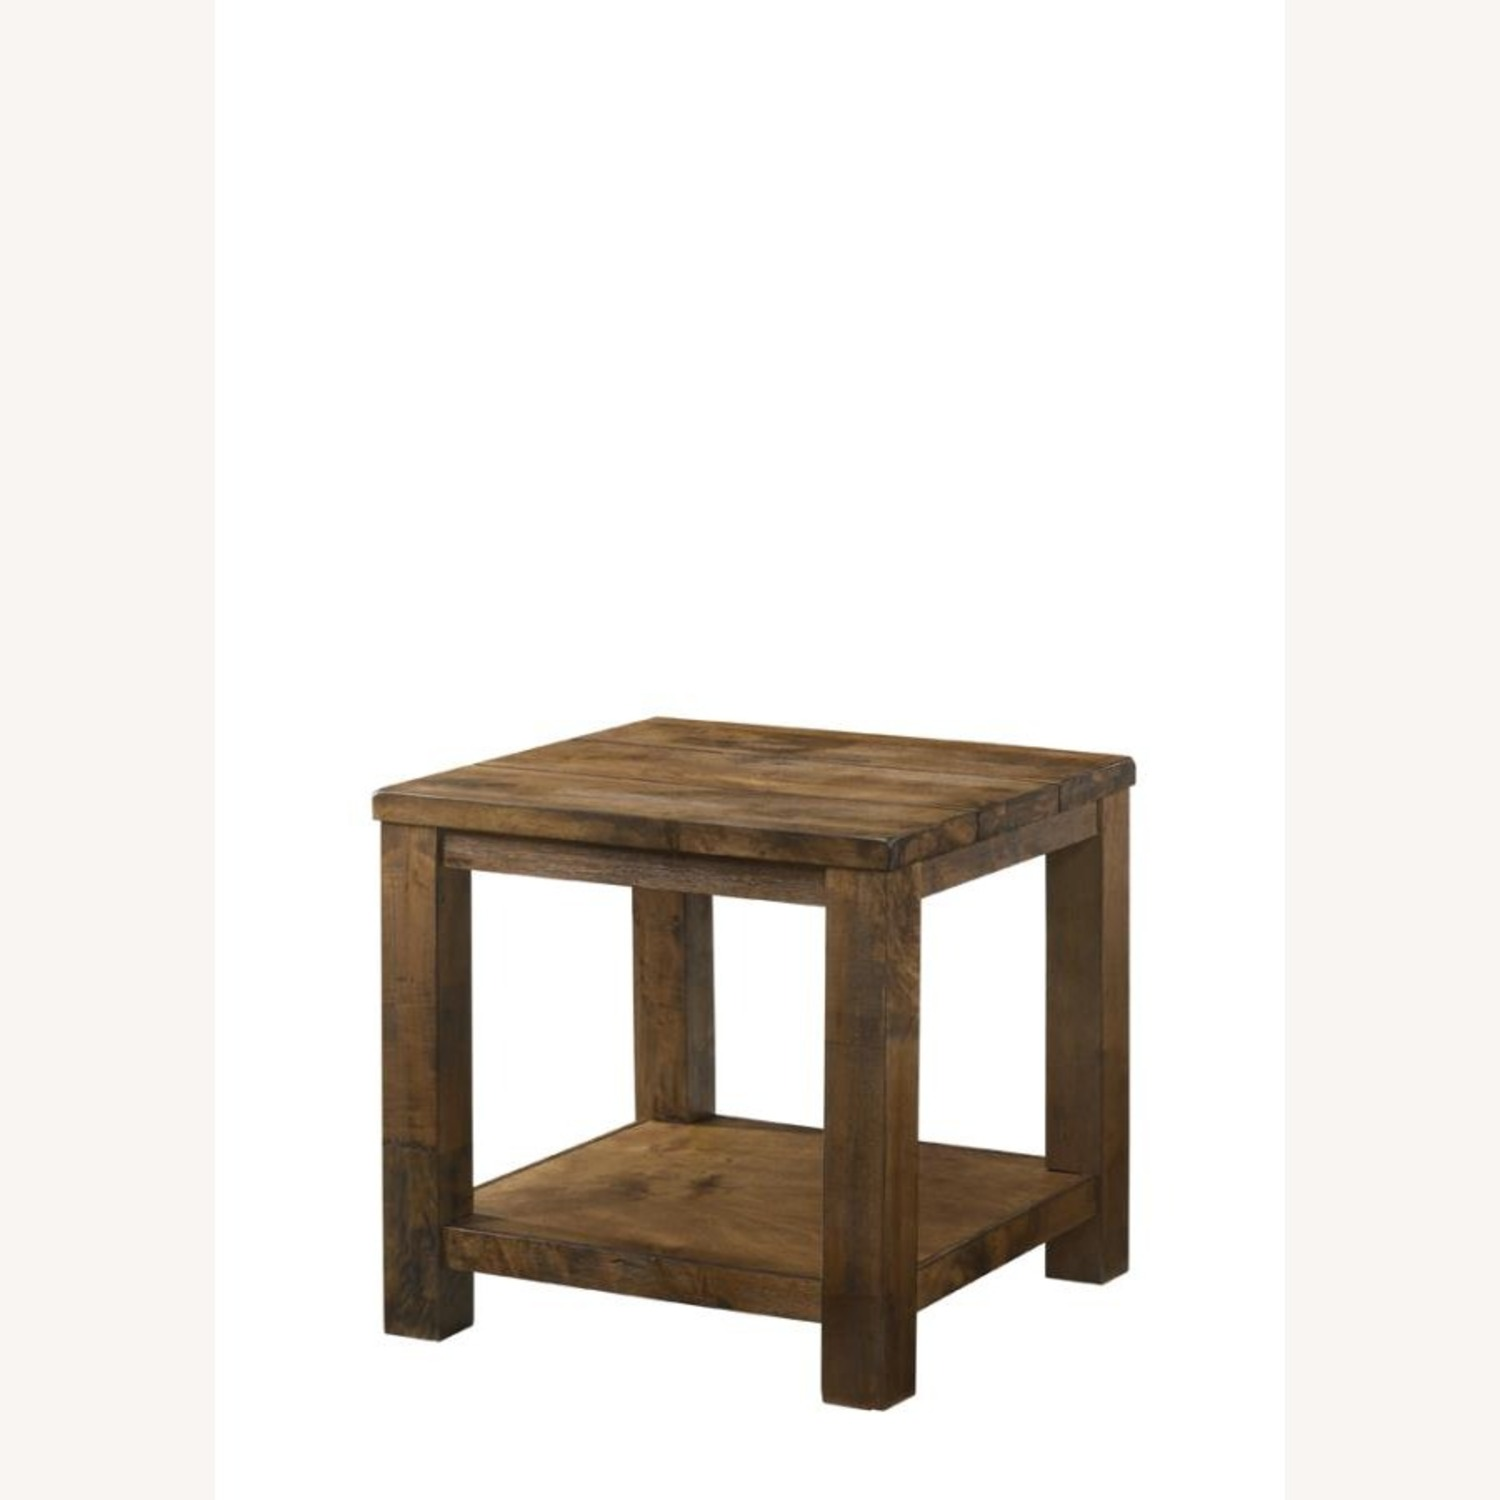 End Table In Rustic Golden Brown Wood - image-1